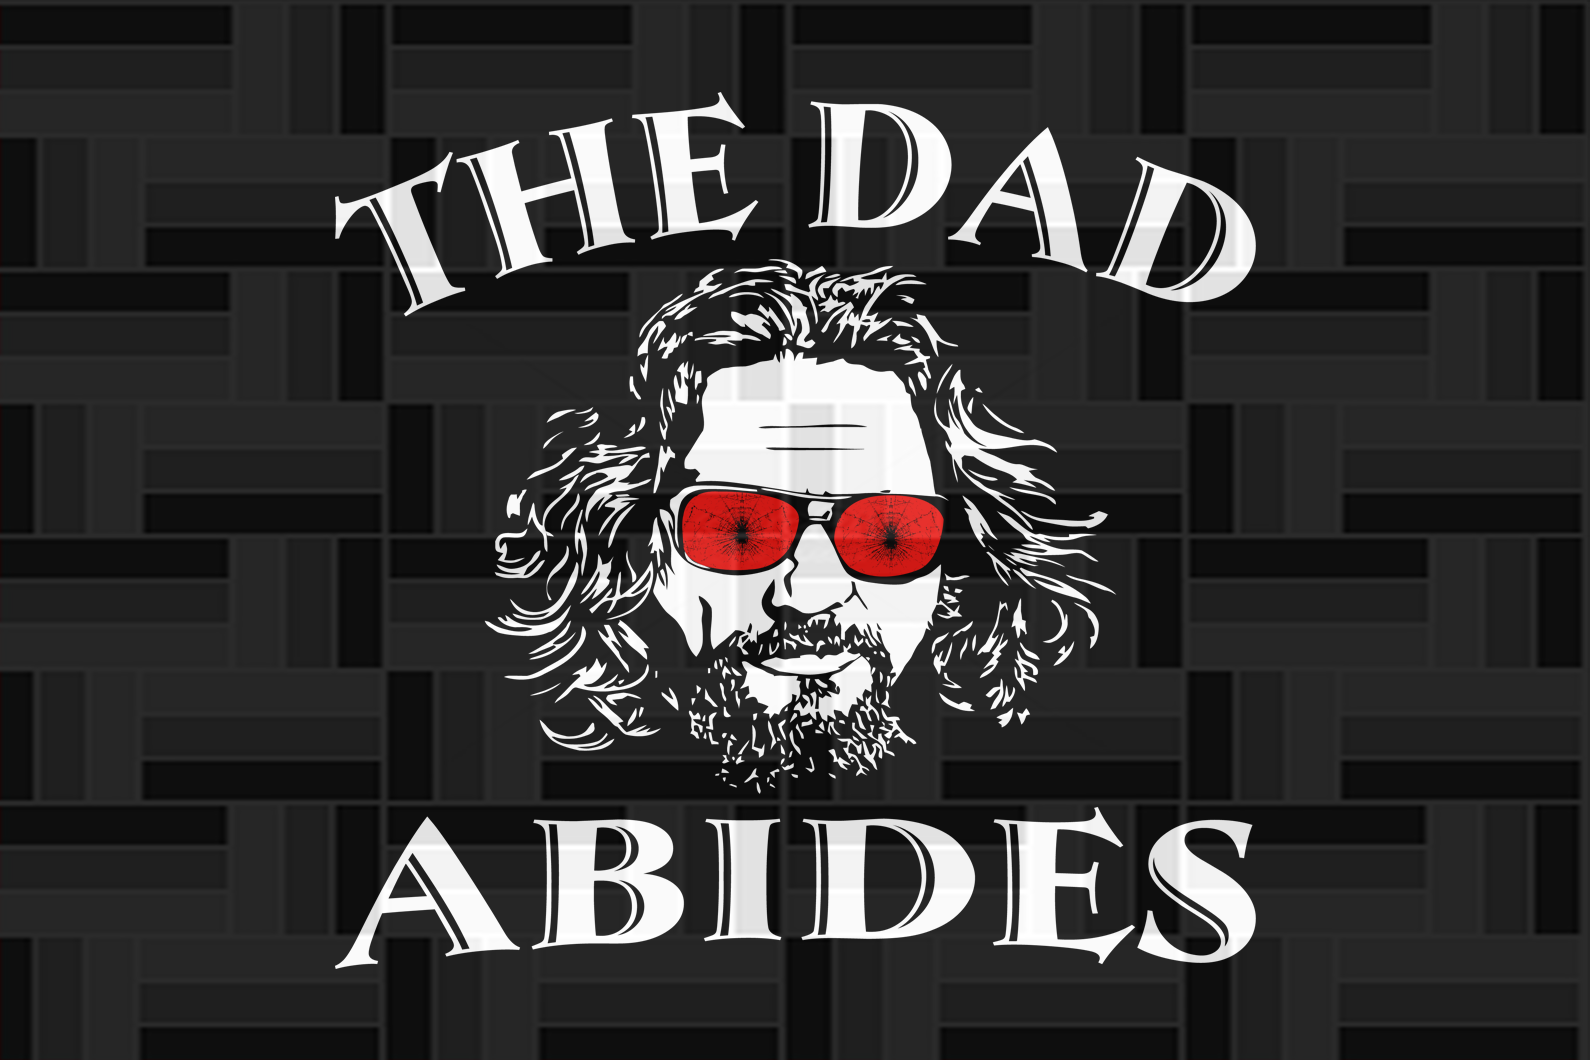 The dad abides svg, fathers day svg, fathers day svg, fathers day gift, gift for papa, fathers day lover, fathers day lover gift, dad life, dad svg, family life svg, Files For Silhouette, Files For Cricut, SVG, DXF, EPS, PNG, Instant Download